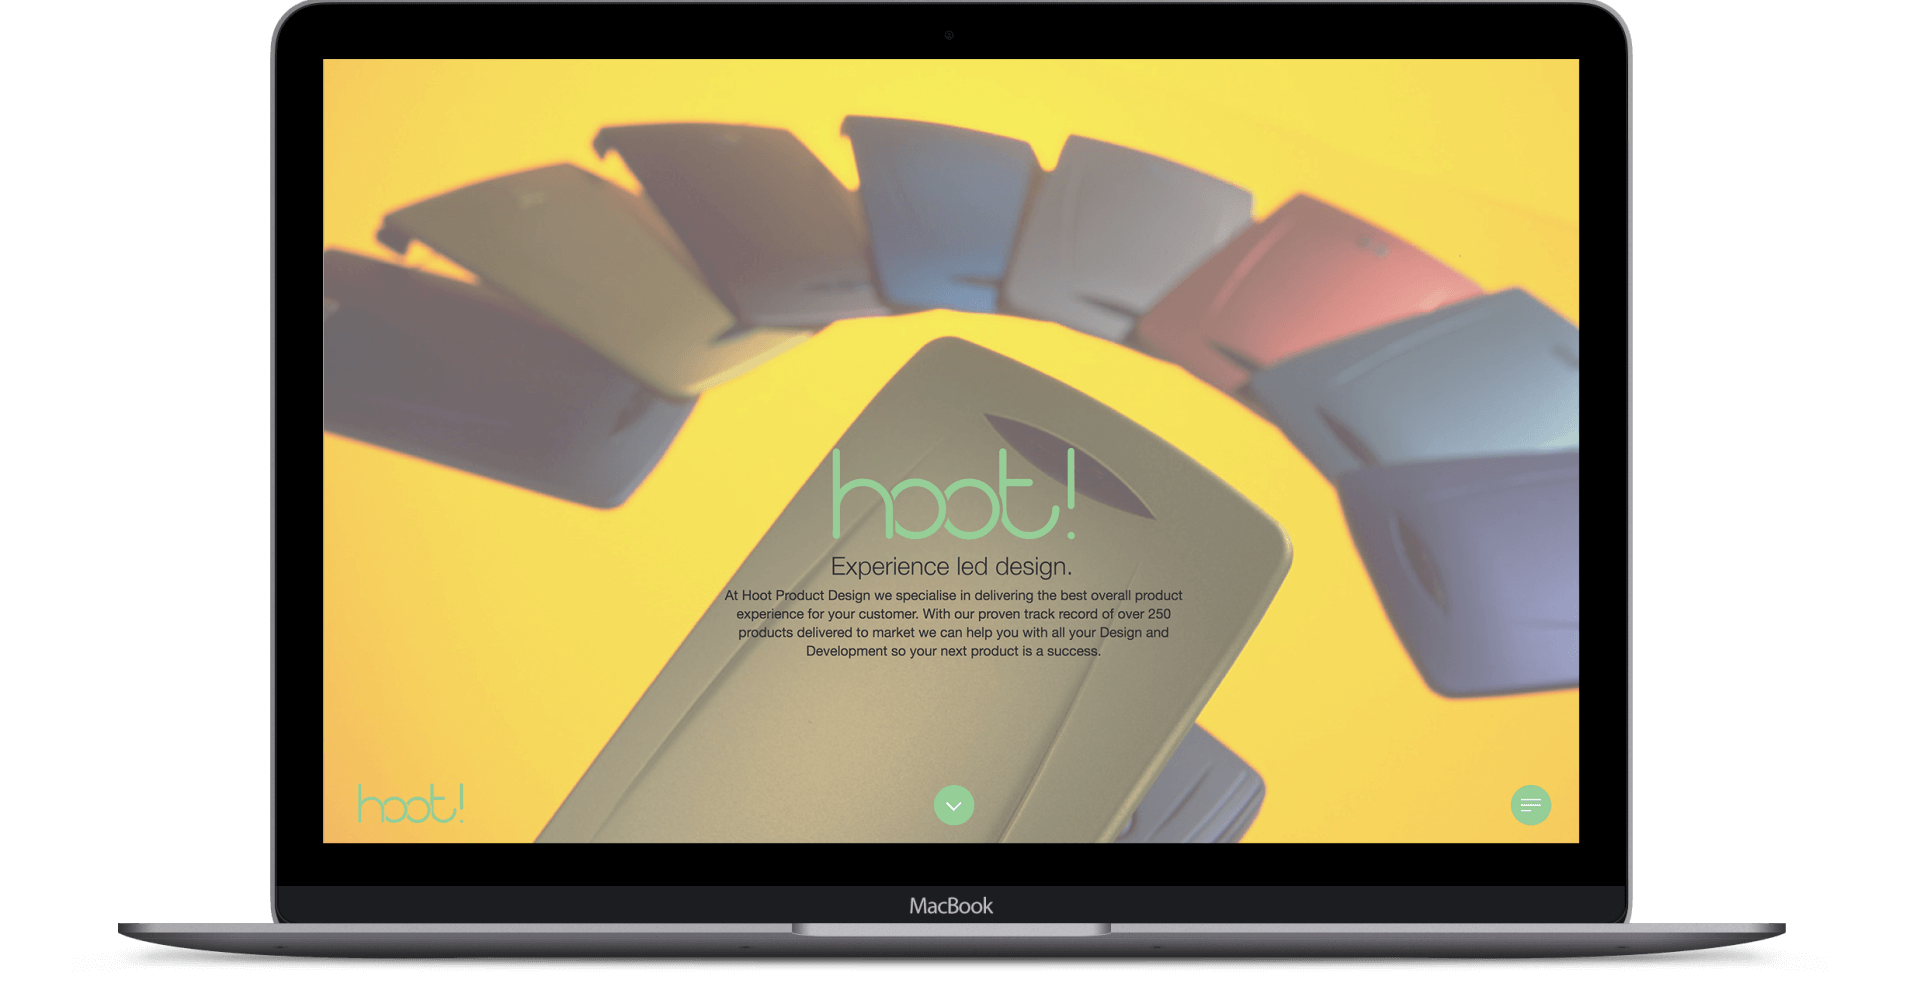 Hoot Product Design  - Website Re-design